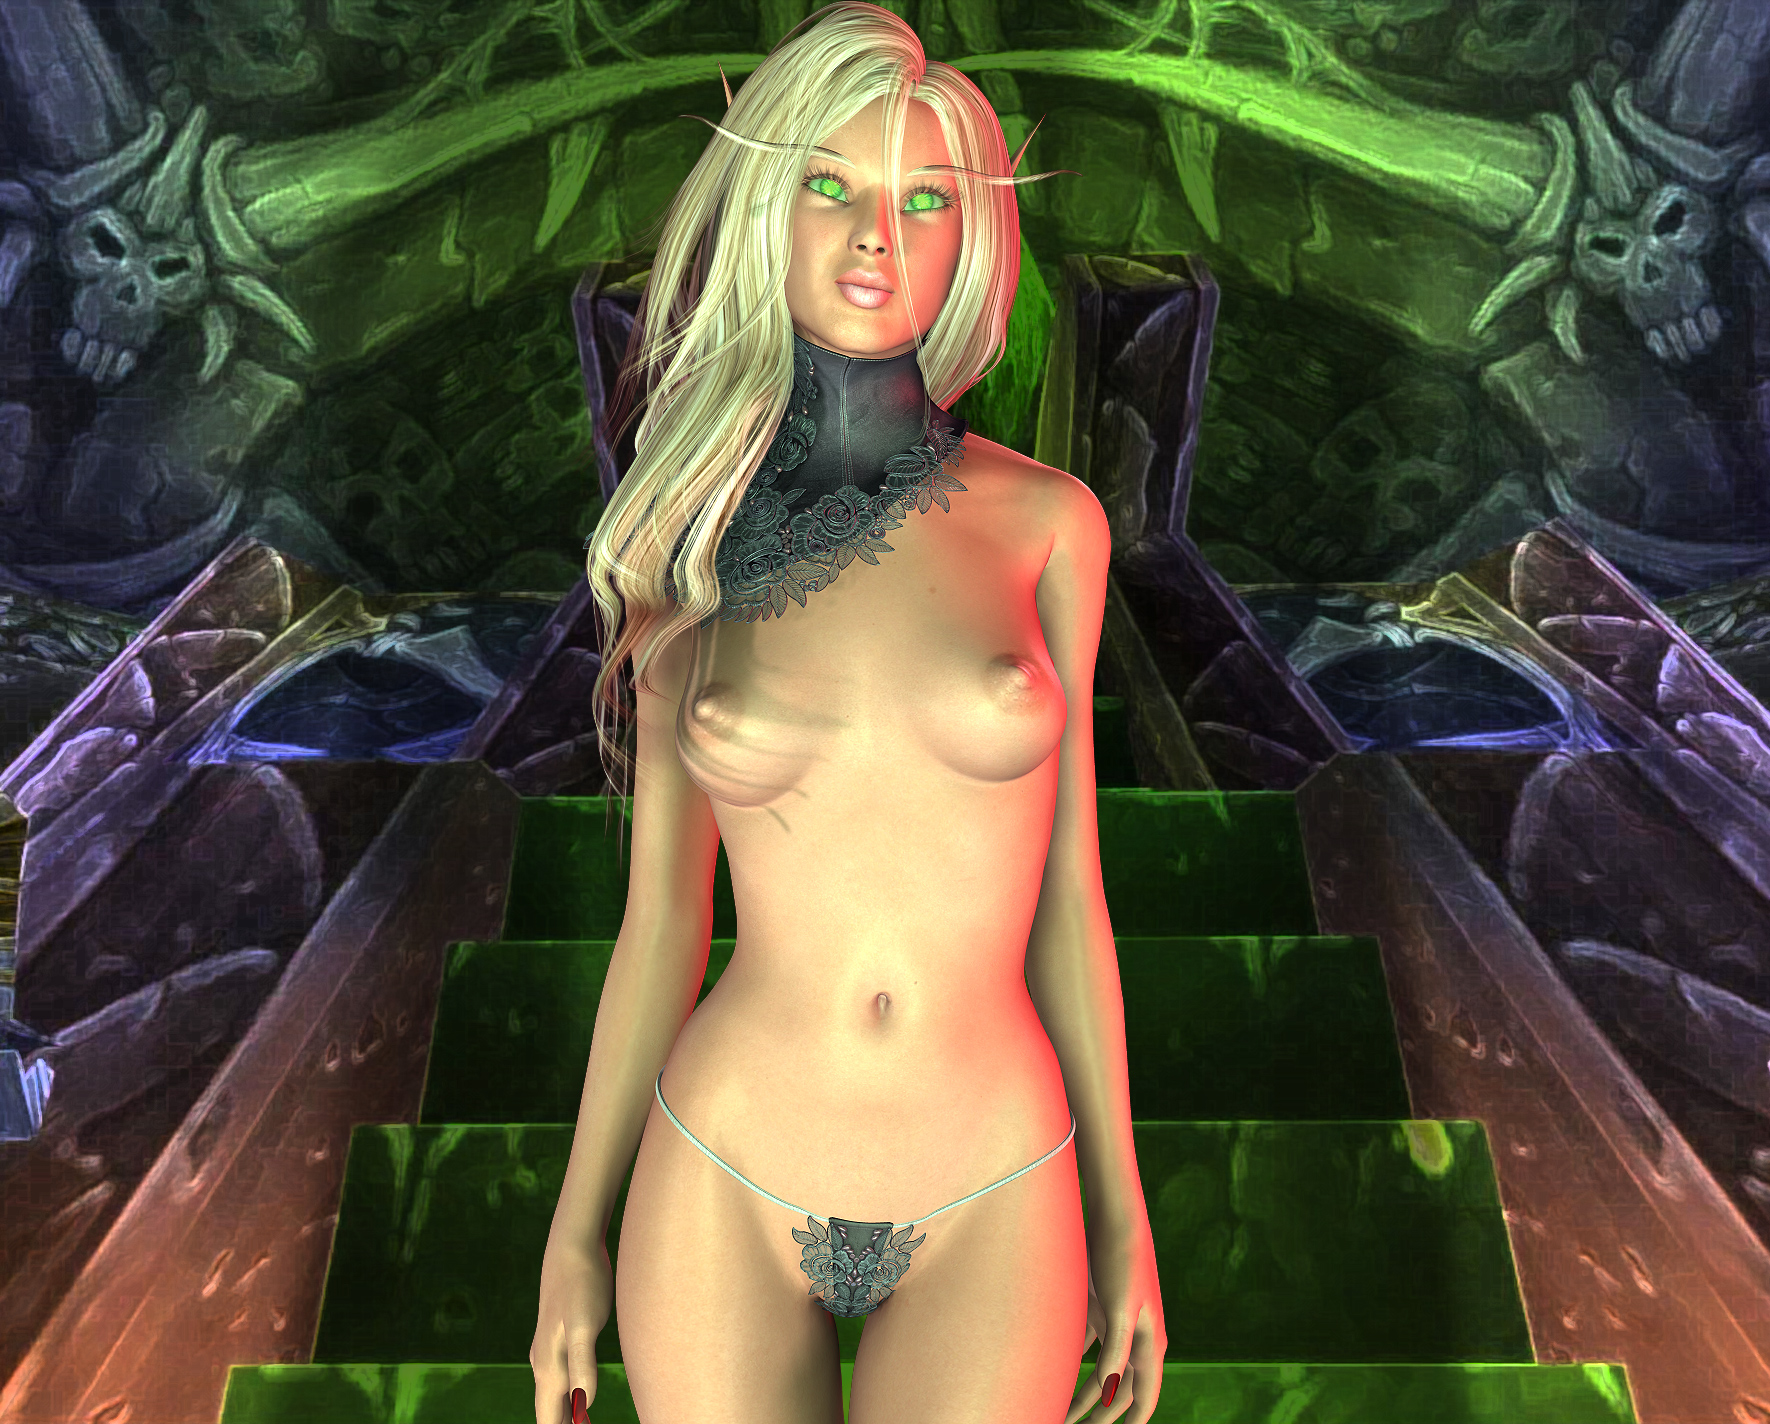 Elf girl masterbates adult photos